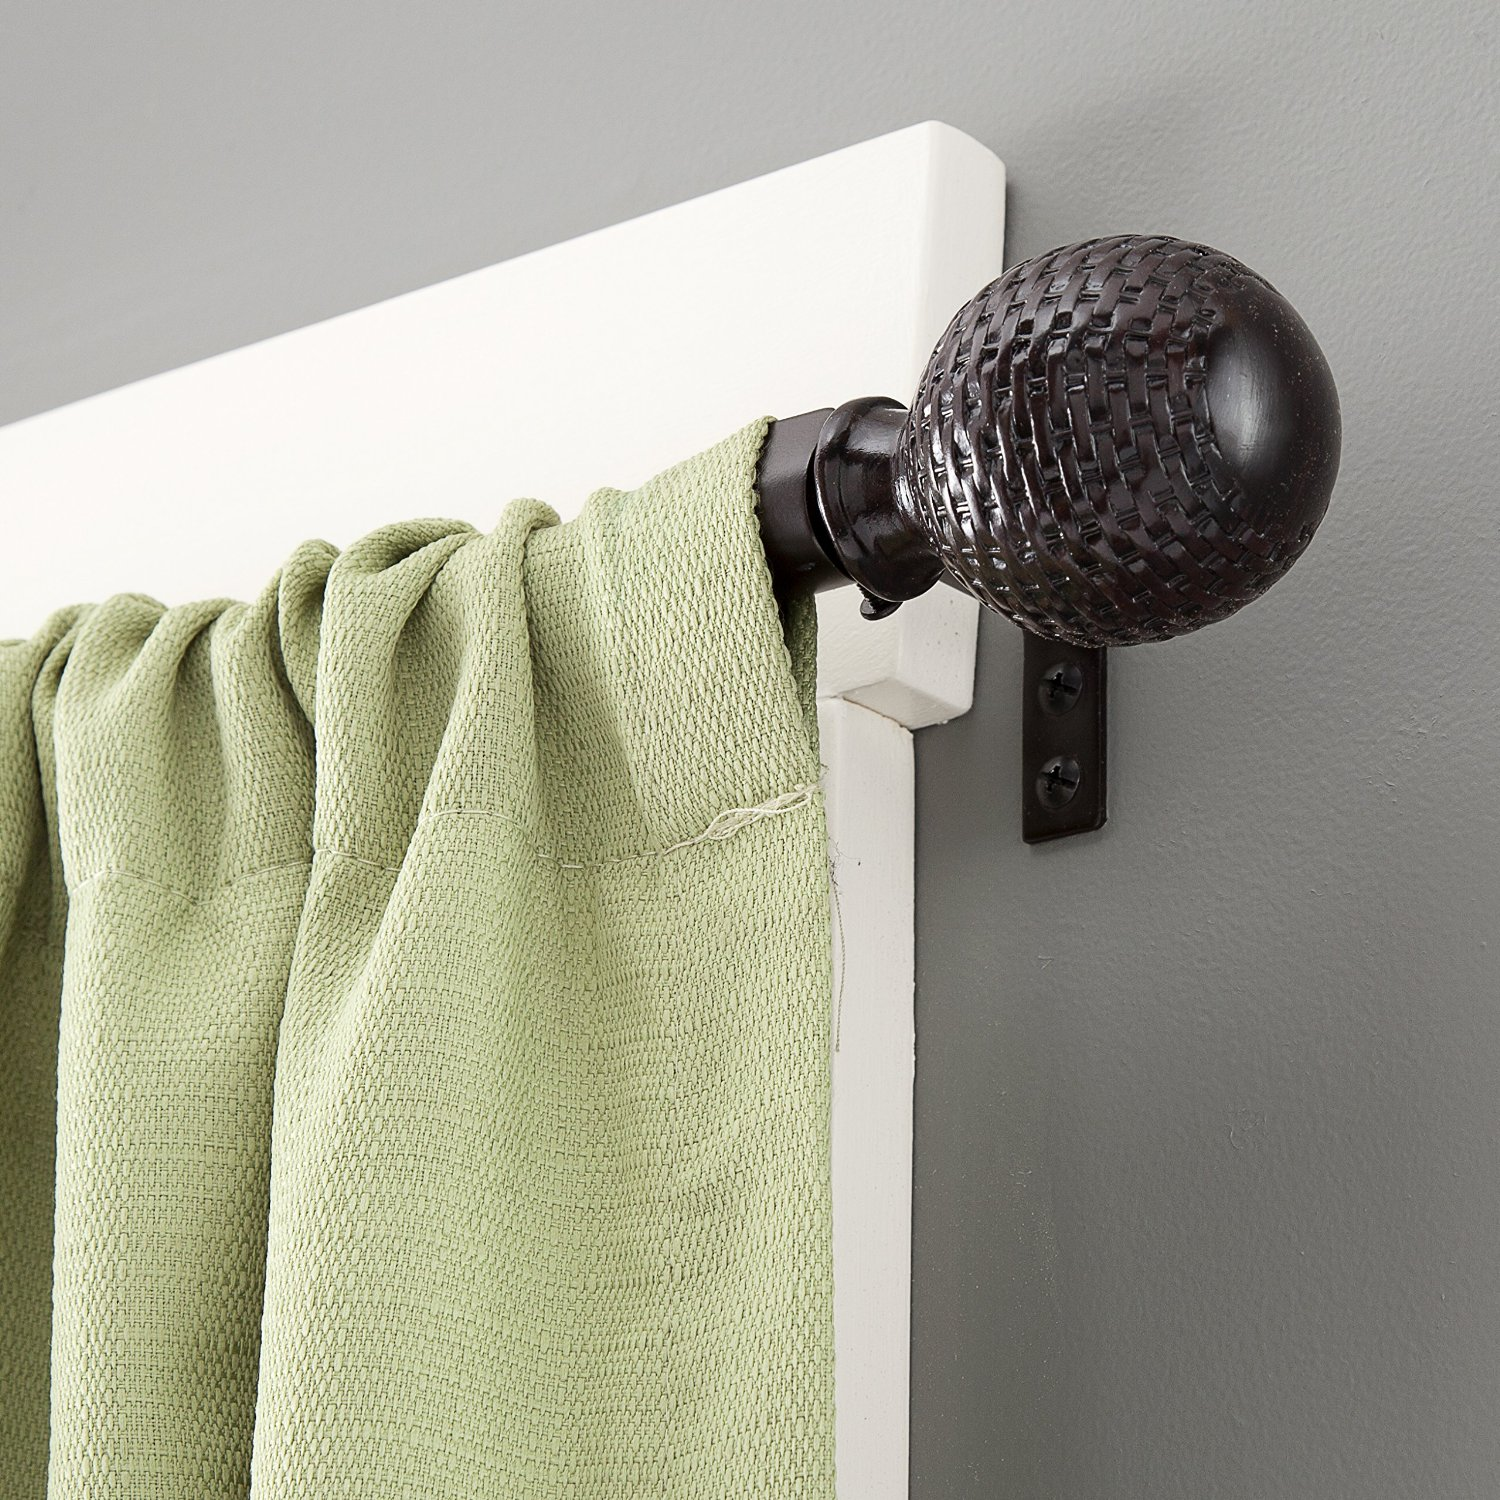 Kenney Woven Ball Weathered Brown Curtain Rod